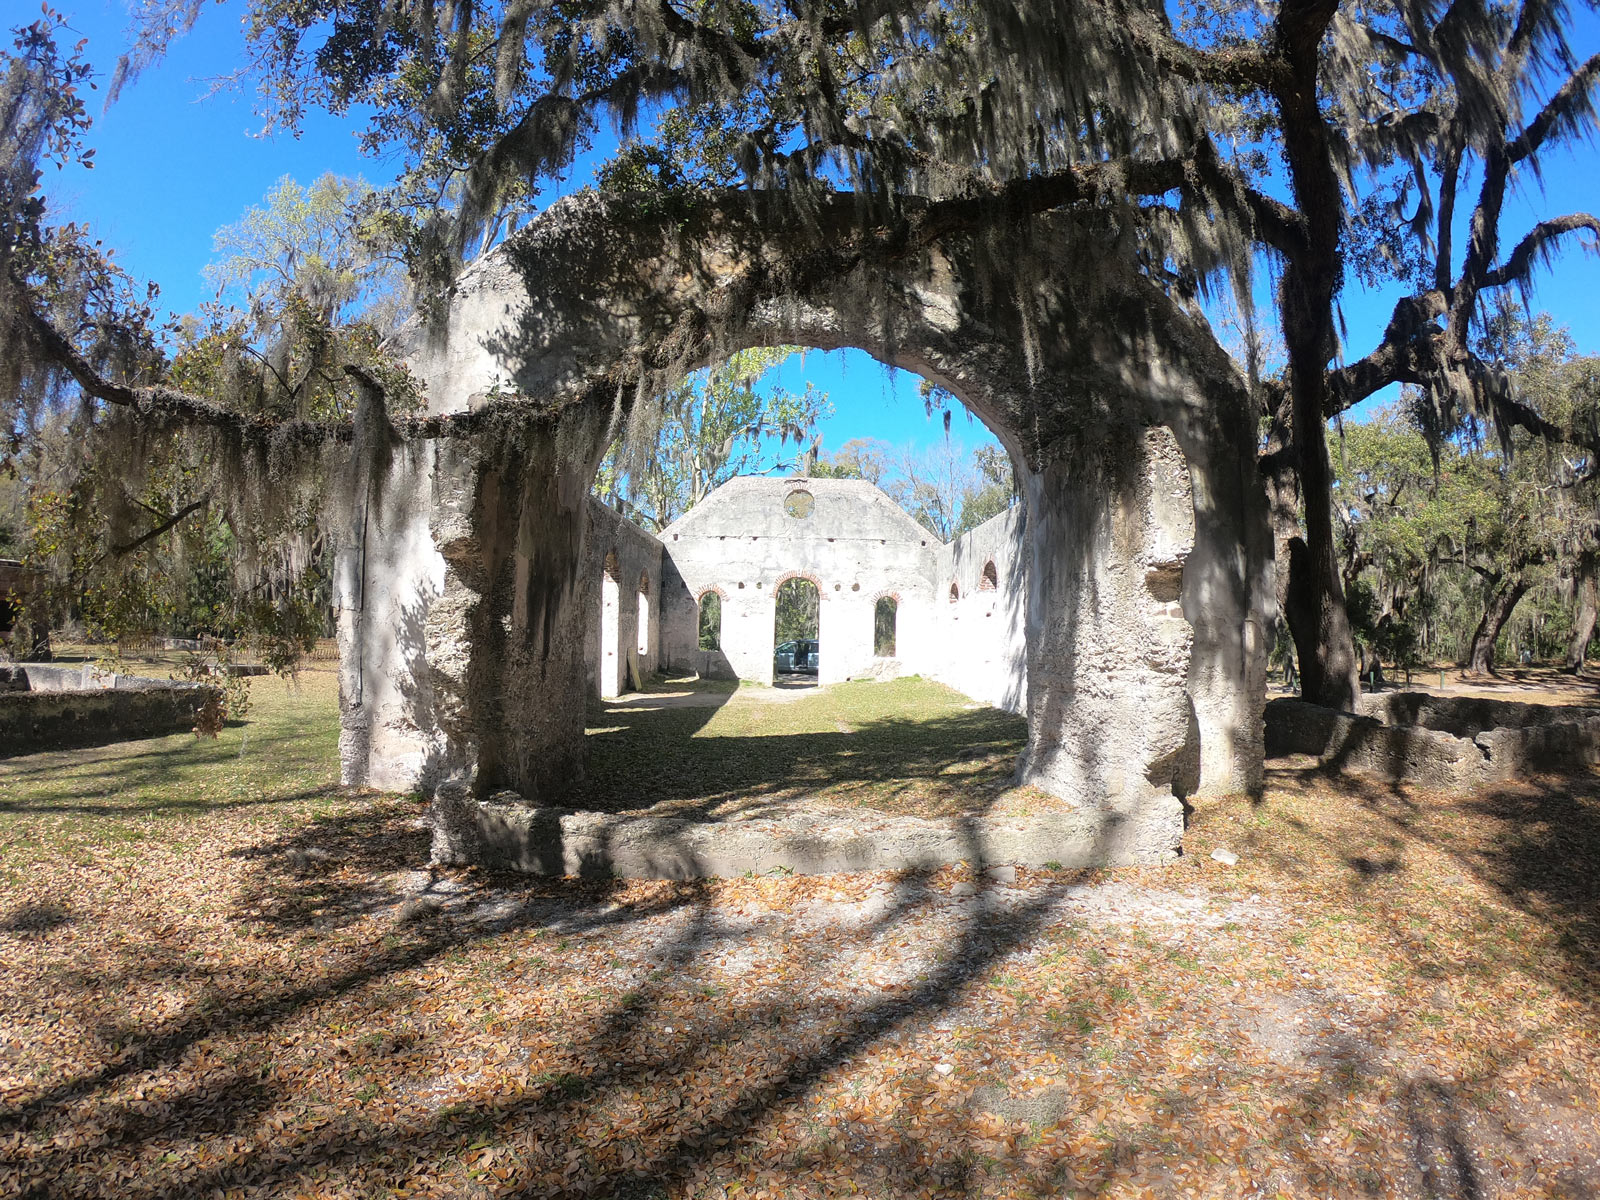 Chape of Ease ruins surrounded by blue sky, live oaks, Spanish moss near Beaufort, South Carolina